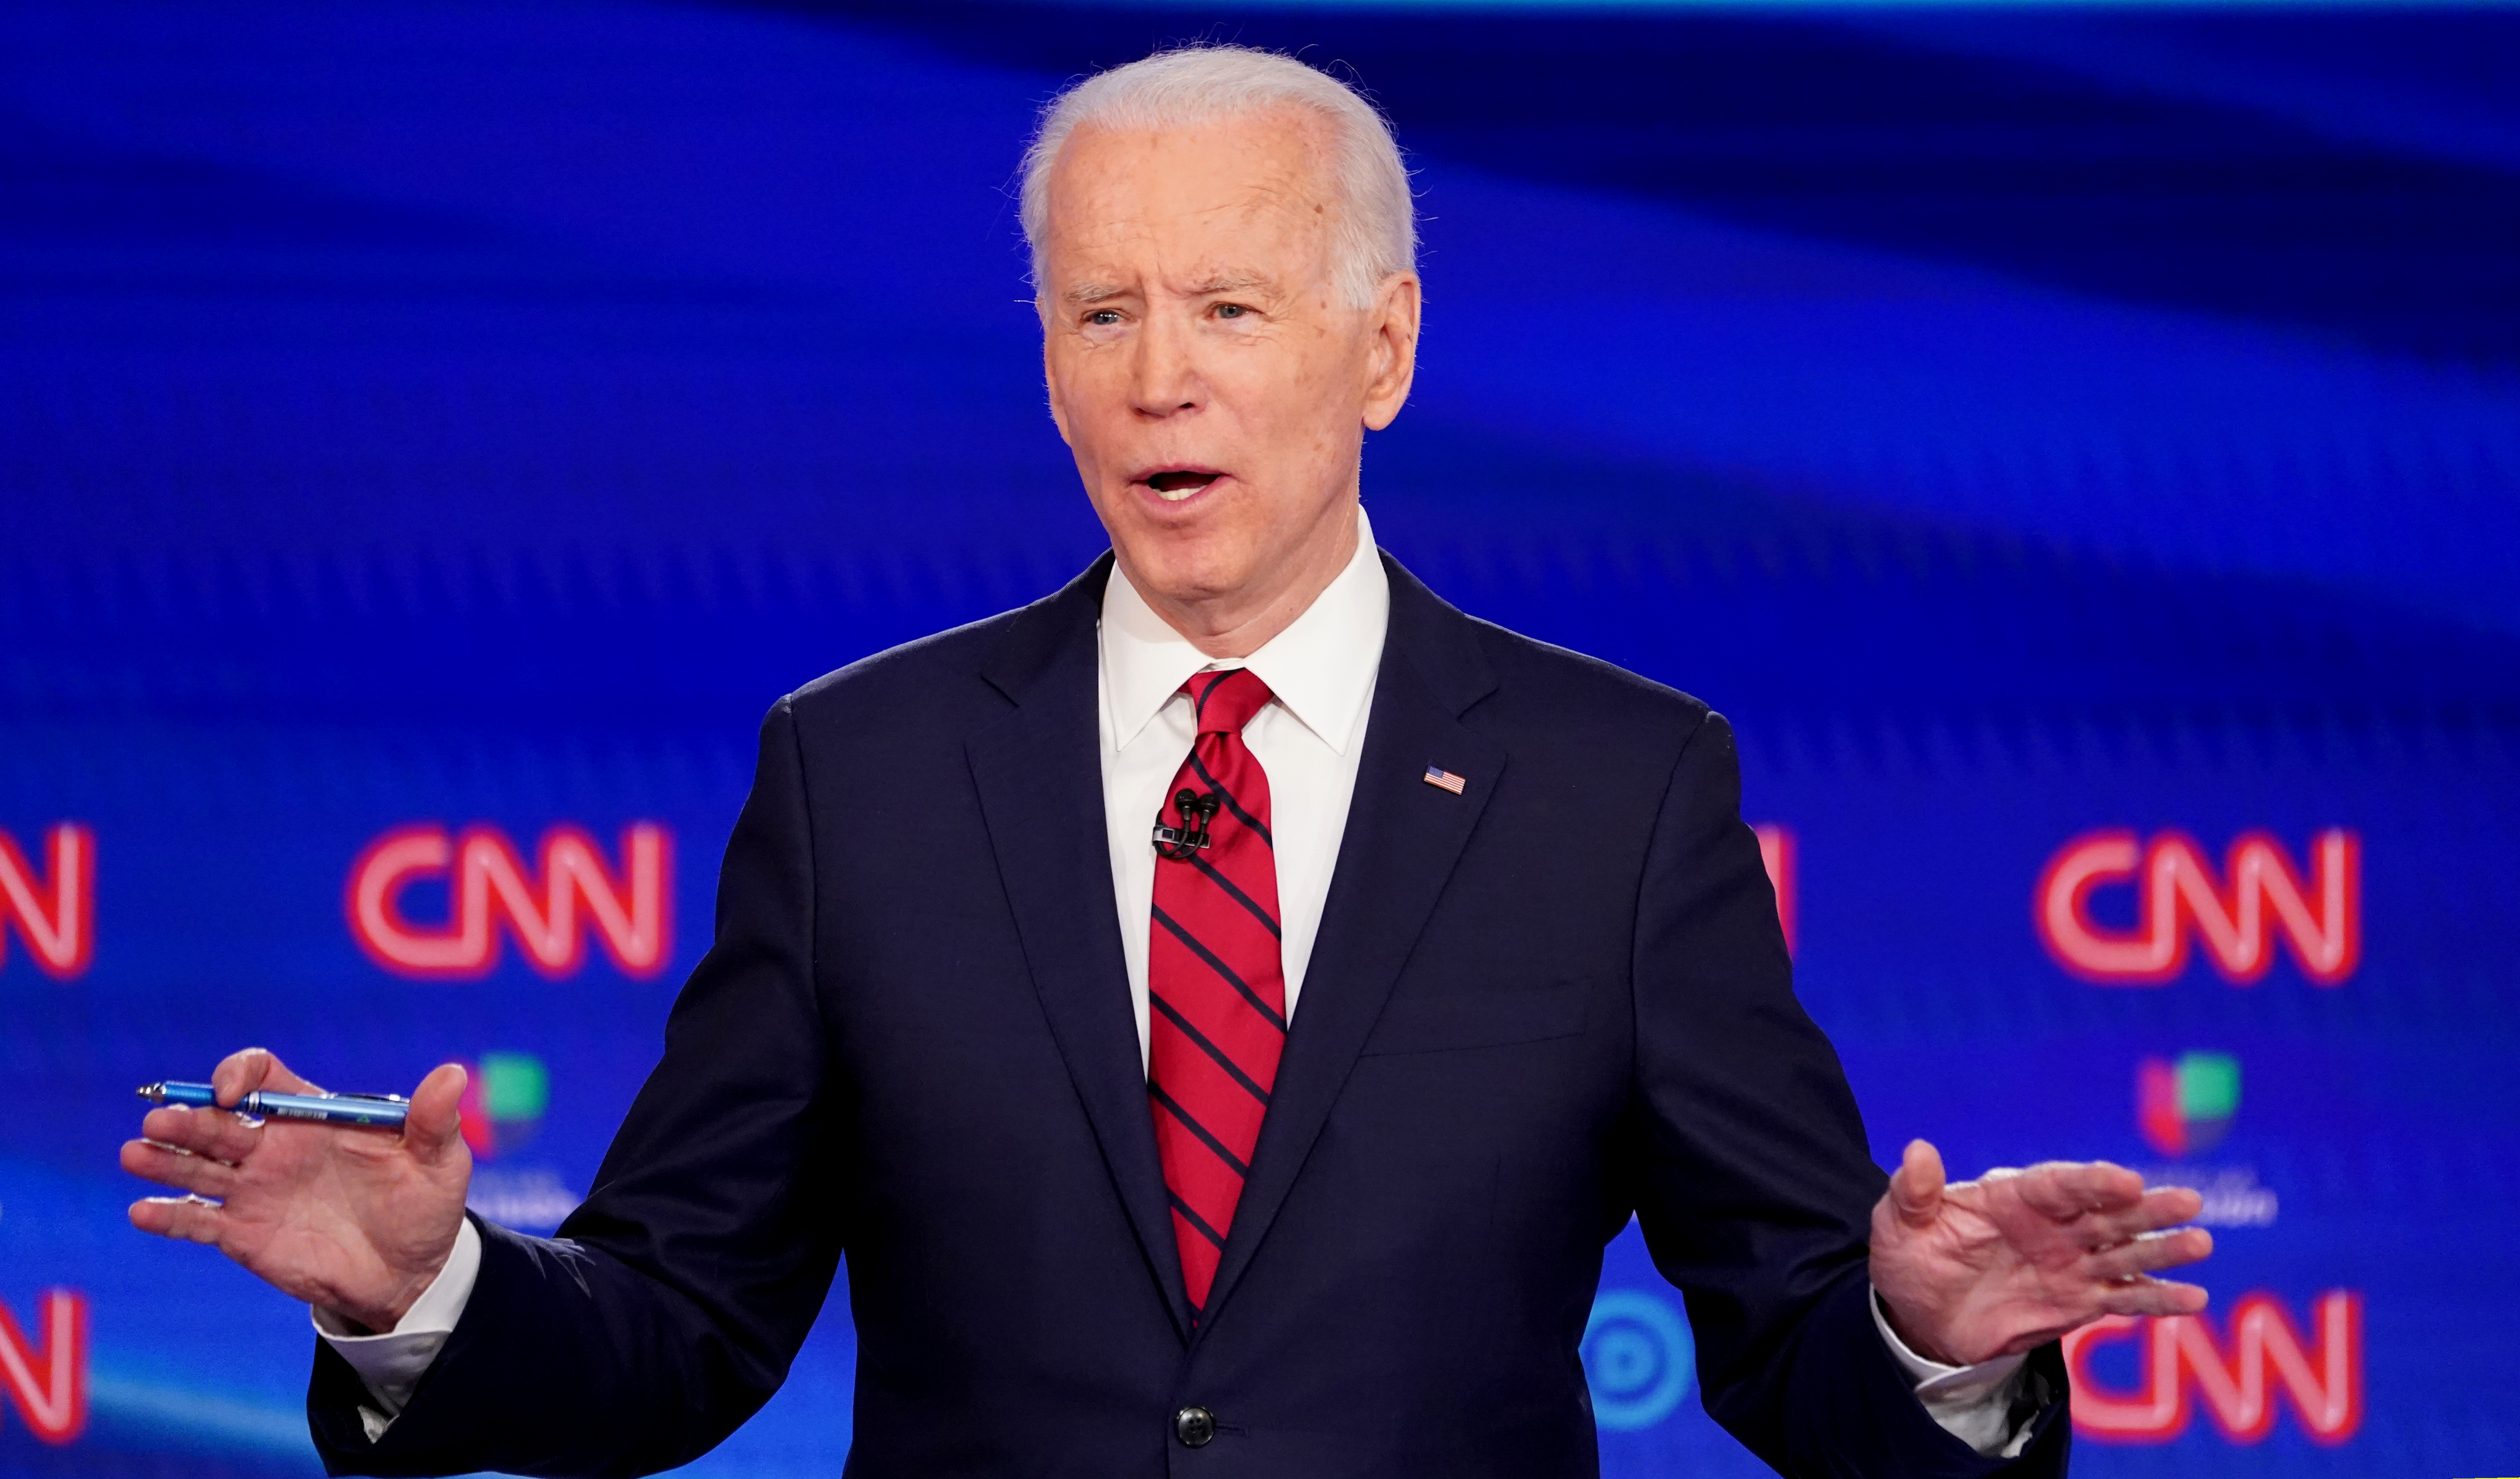 Democratic U.S. presidential candidate and former Vice President Joe Biden speaks during the 11th Democratic candidates debate of the 2020 U.S. presidential campaign, held in CNN's Washington studios without an audience because of the global coronavirus pandemic, in Washington, U.S., March 15, 2020. REUTERS/Kevin Lamarque